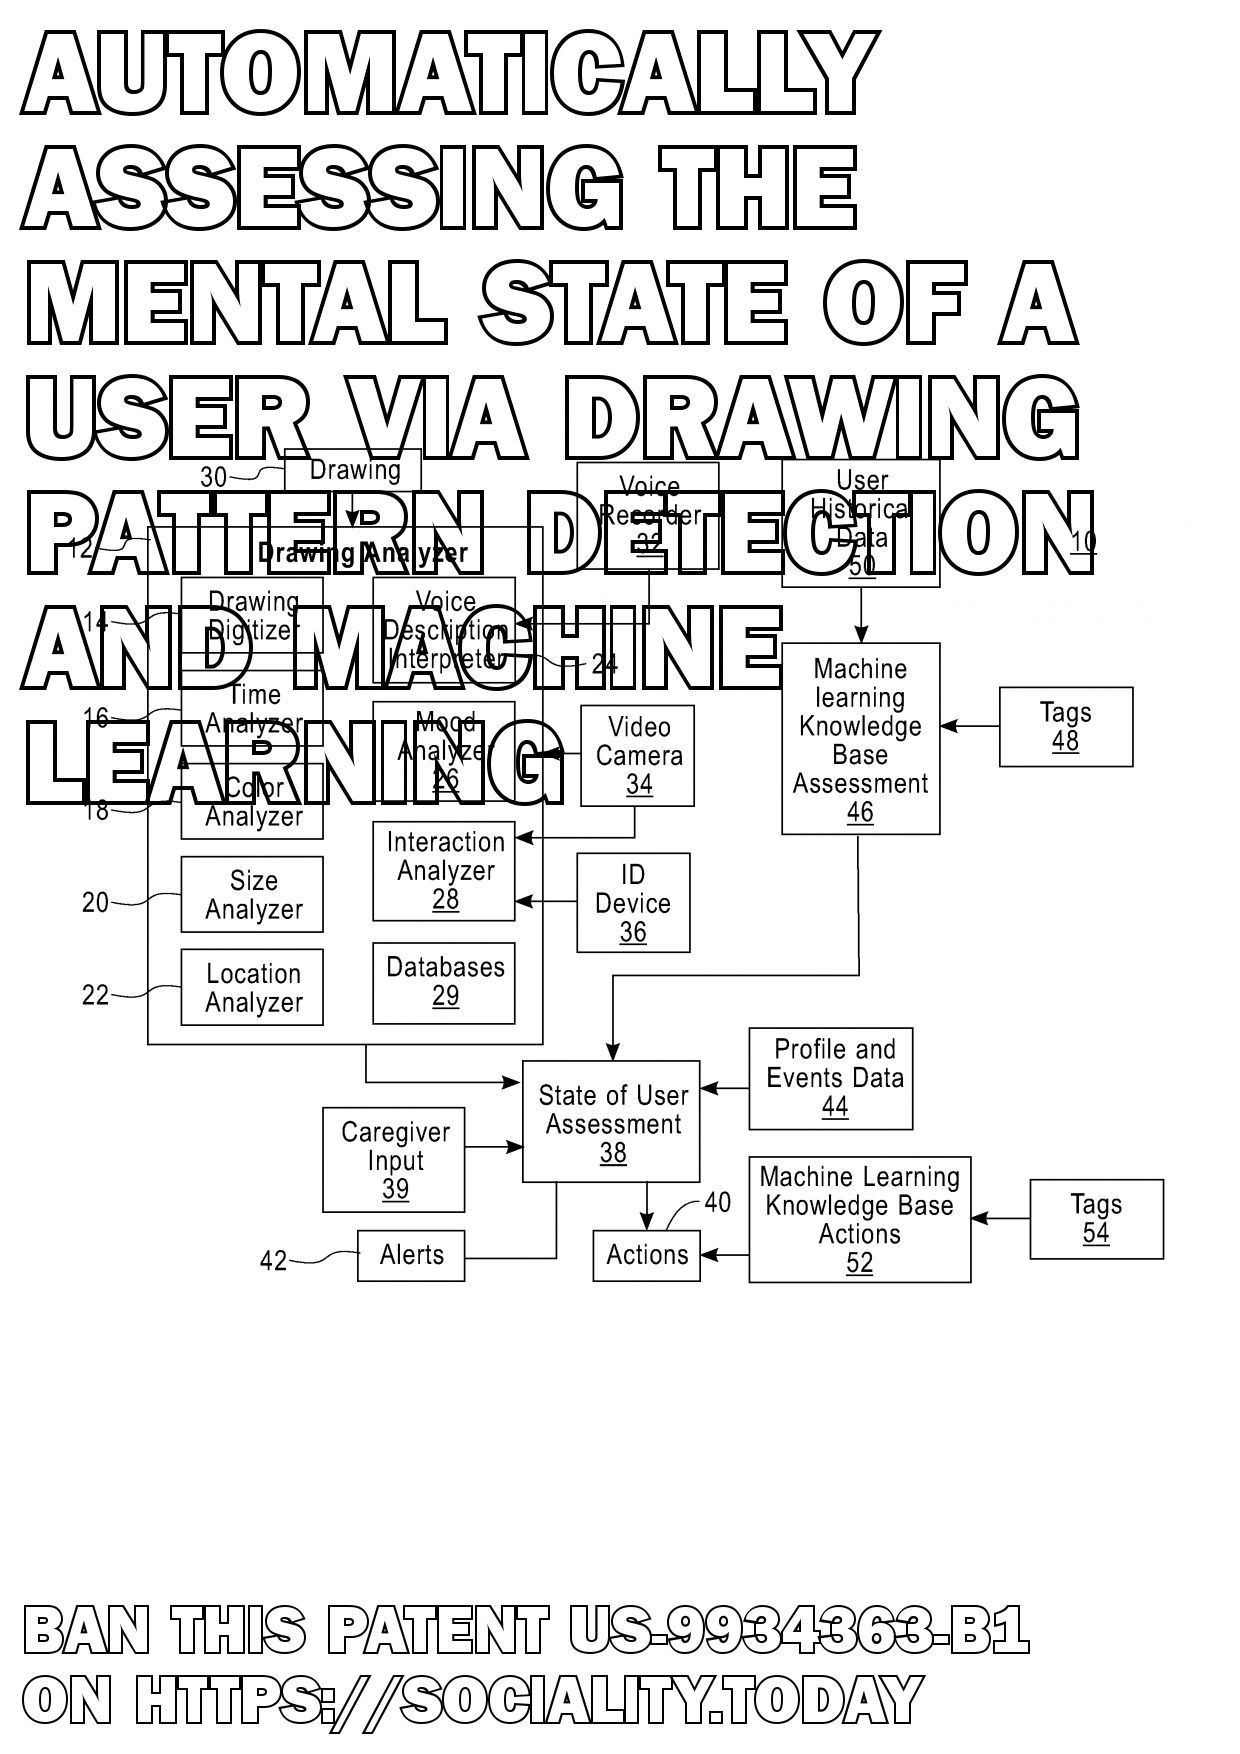 Automatically assessing the mental state of a user via drawing pattern detection and machine learning  - US-9934363-B1